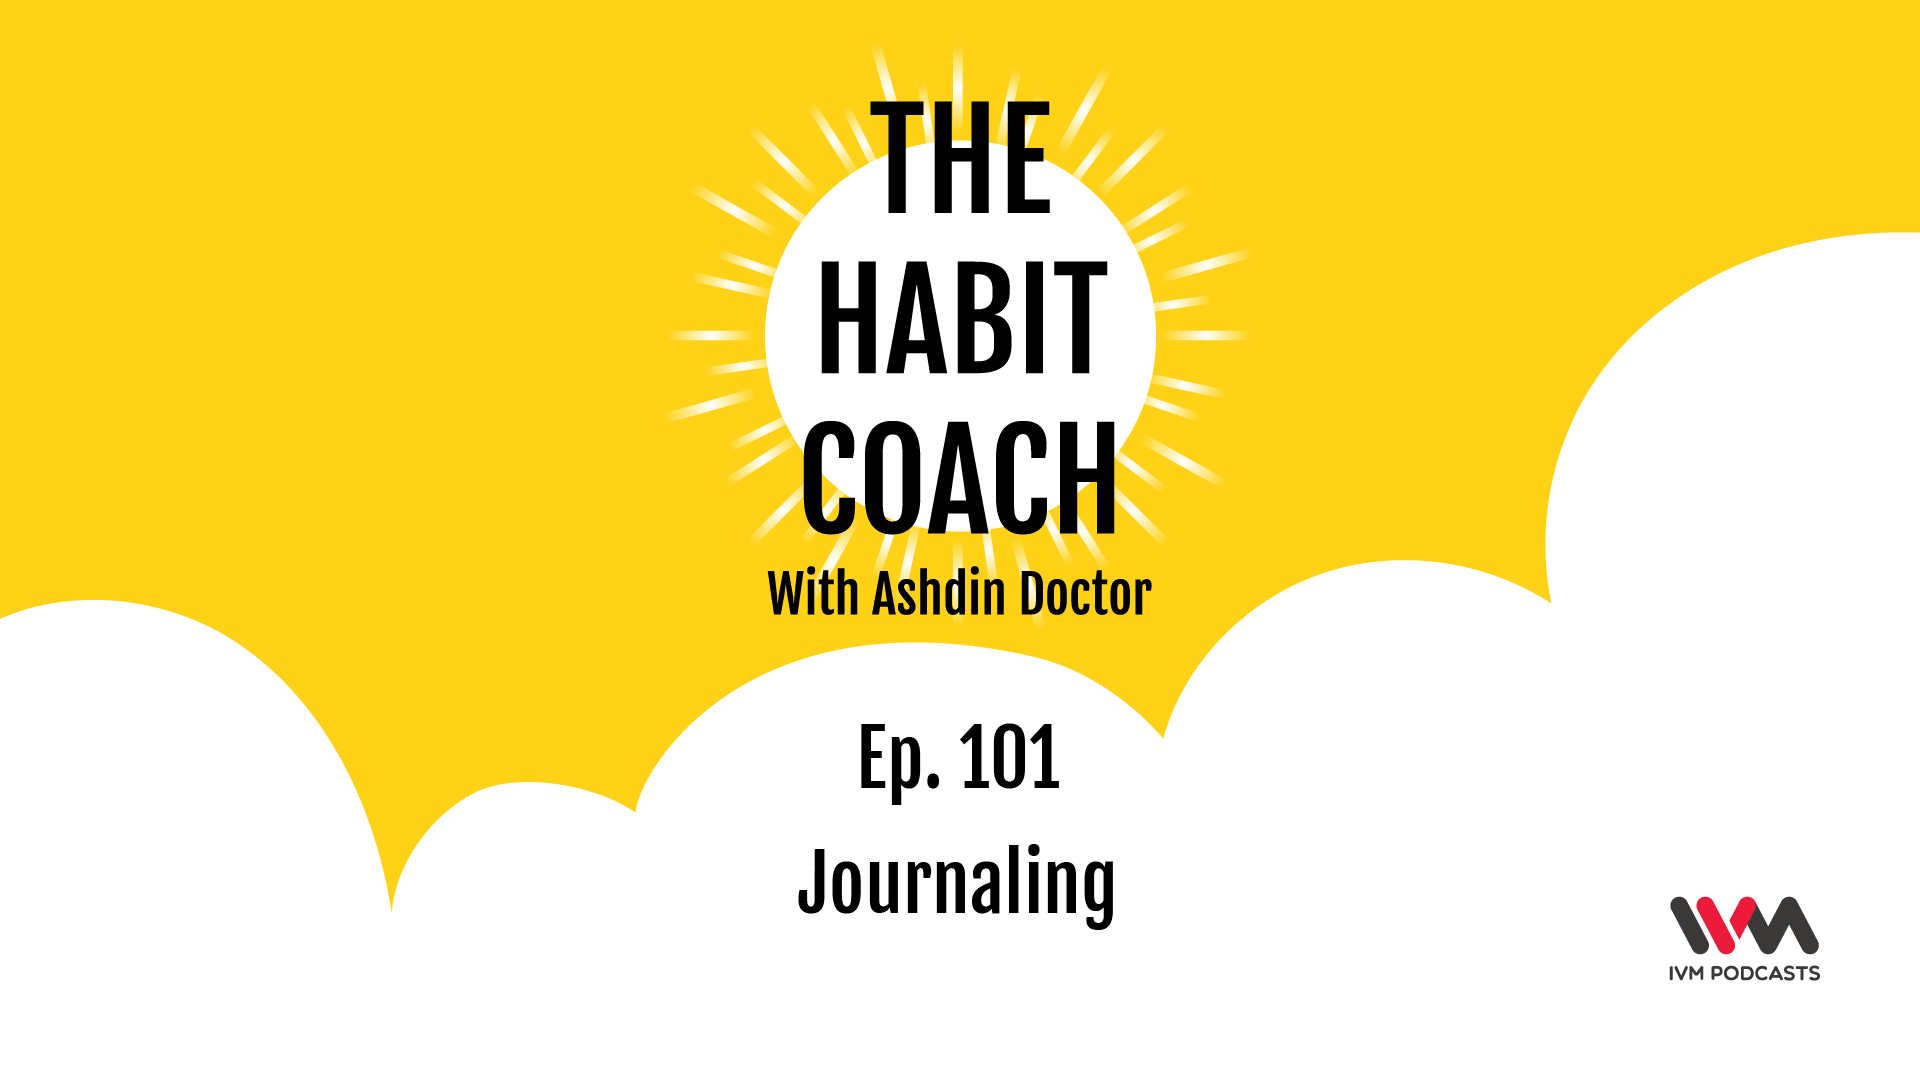 TheHabitCoachEpisode101.png